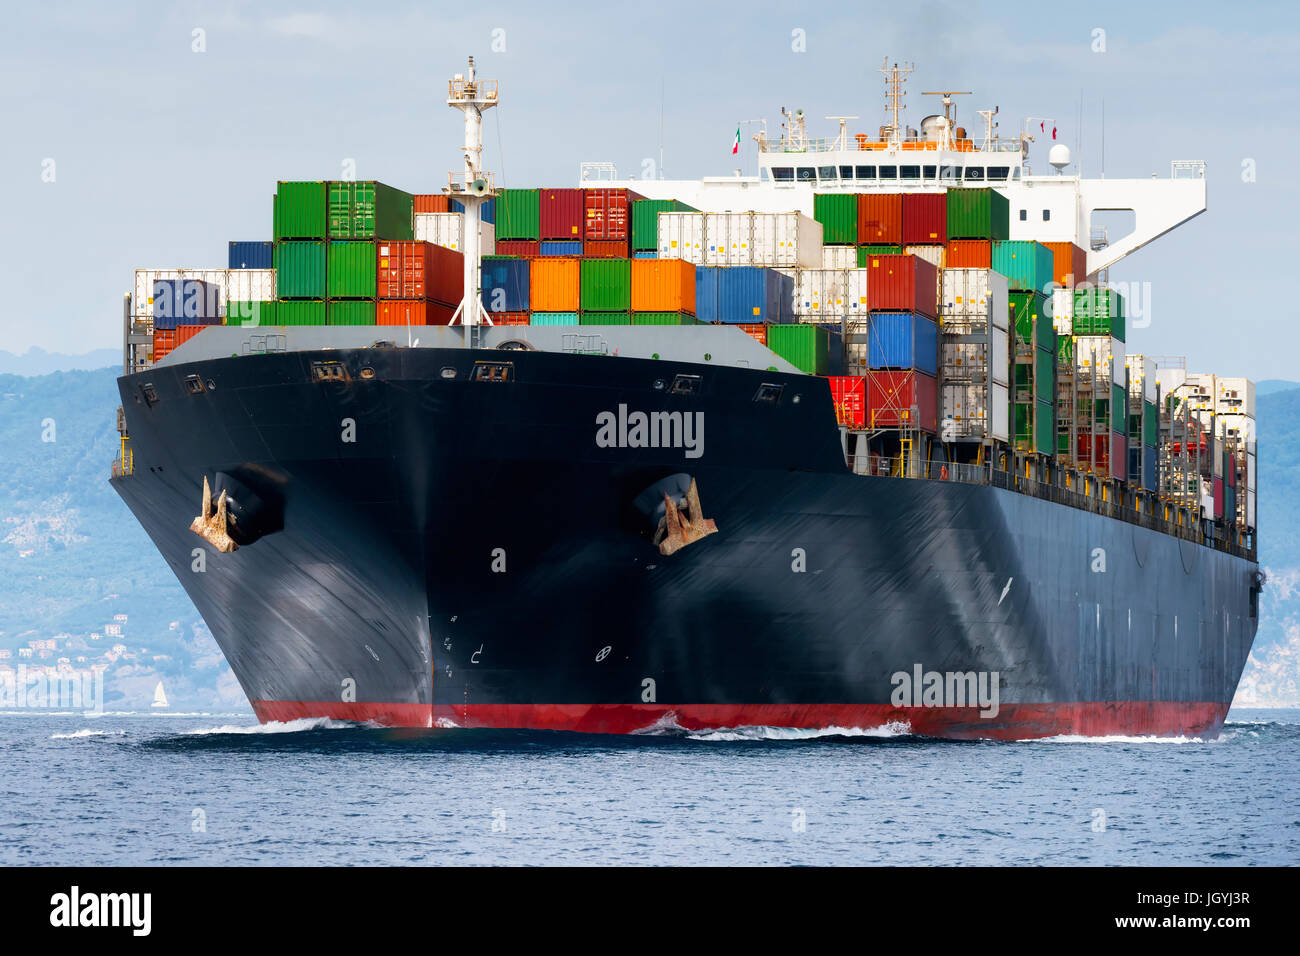 International Container Cargo ship, Freight Transportation fit shipping concept - Stock Image